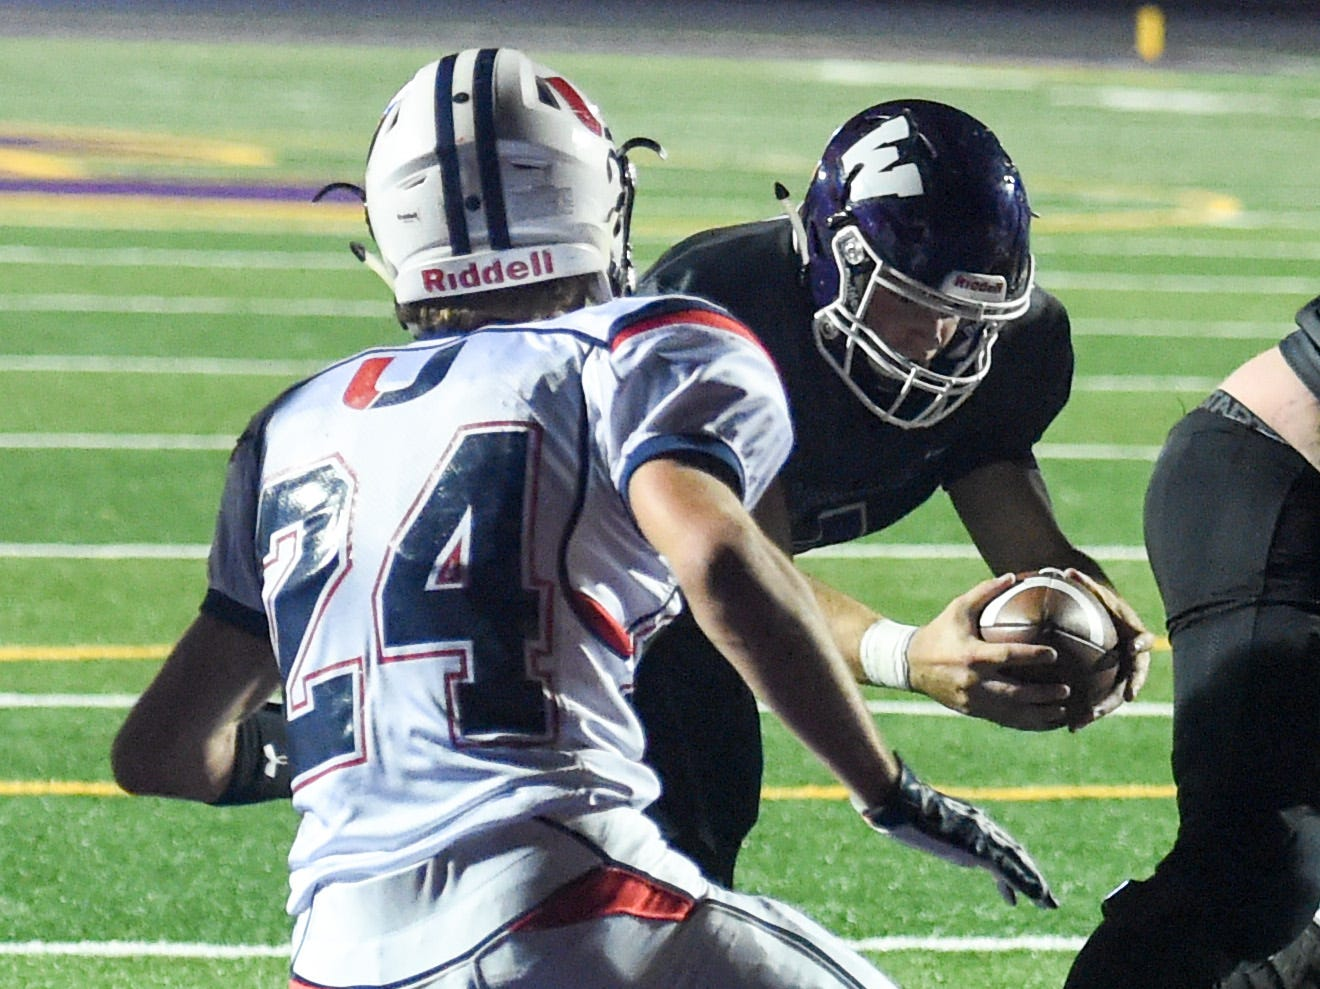 Urbandale's Hayden Friedrichsen (24) defends as Waukee Quarterback Mitch Randall (4) dives for the goal line on Friday, Oct. 26, 2018 during a playoff game between the Waukee Warriors and the Urbandale J-Hawks at Waukee High School.